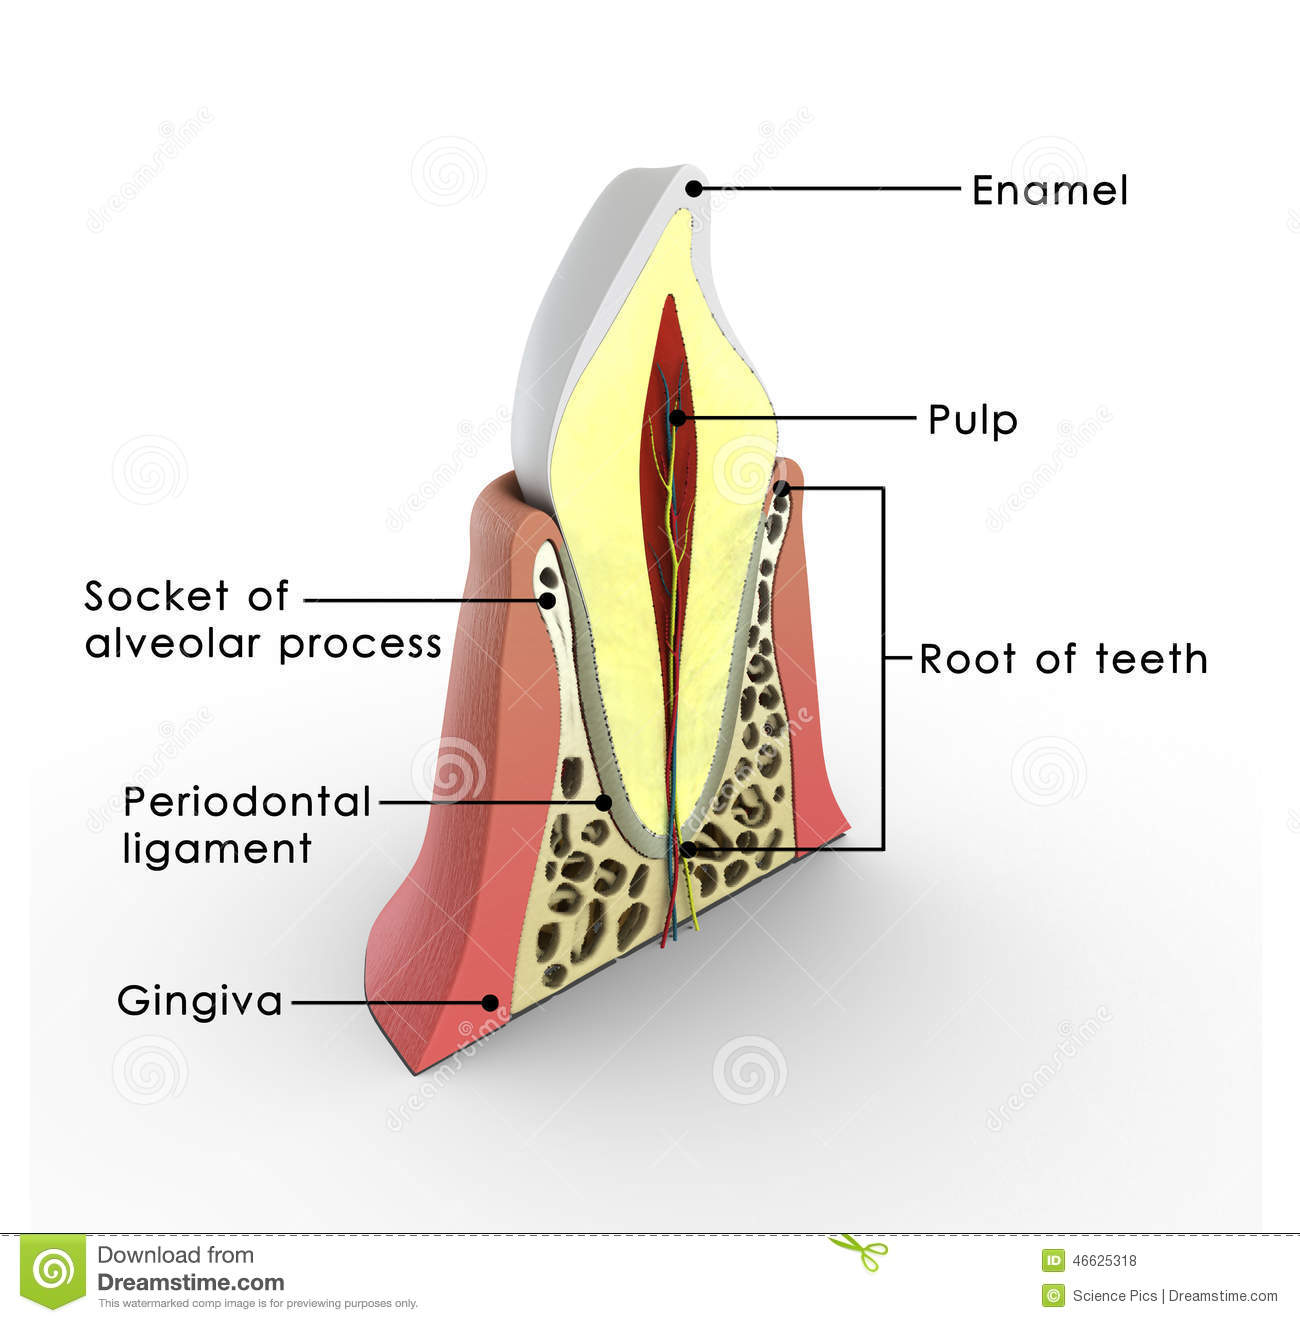 Tooth structure stock illustration. Illustration of anatomy - 46625318